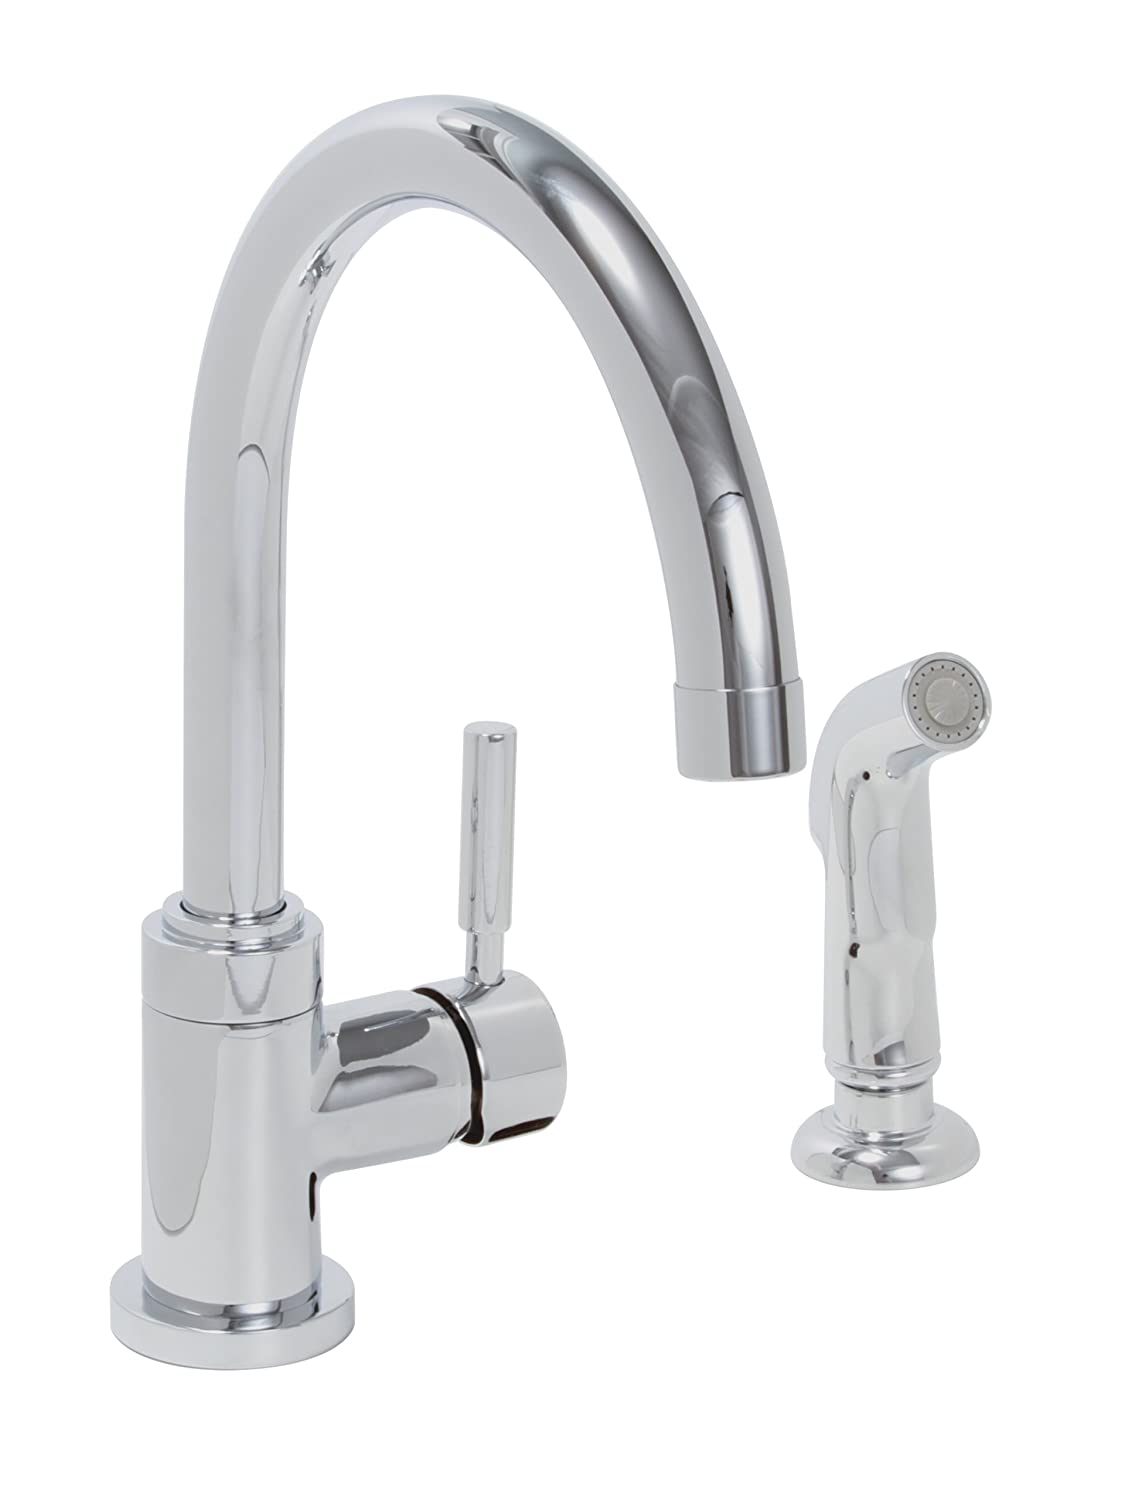 Premier Faucet 120097 Essen Lead Free Single Handle High Arc Kitchen Faucet,  Chrome   Touch On Kitchen Sink Faucets   Amazon.com